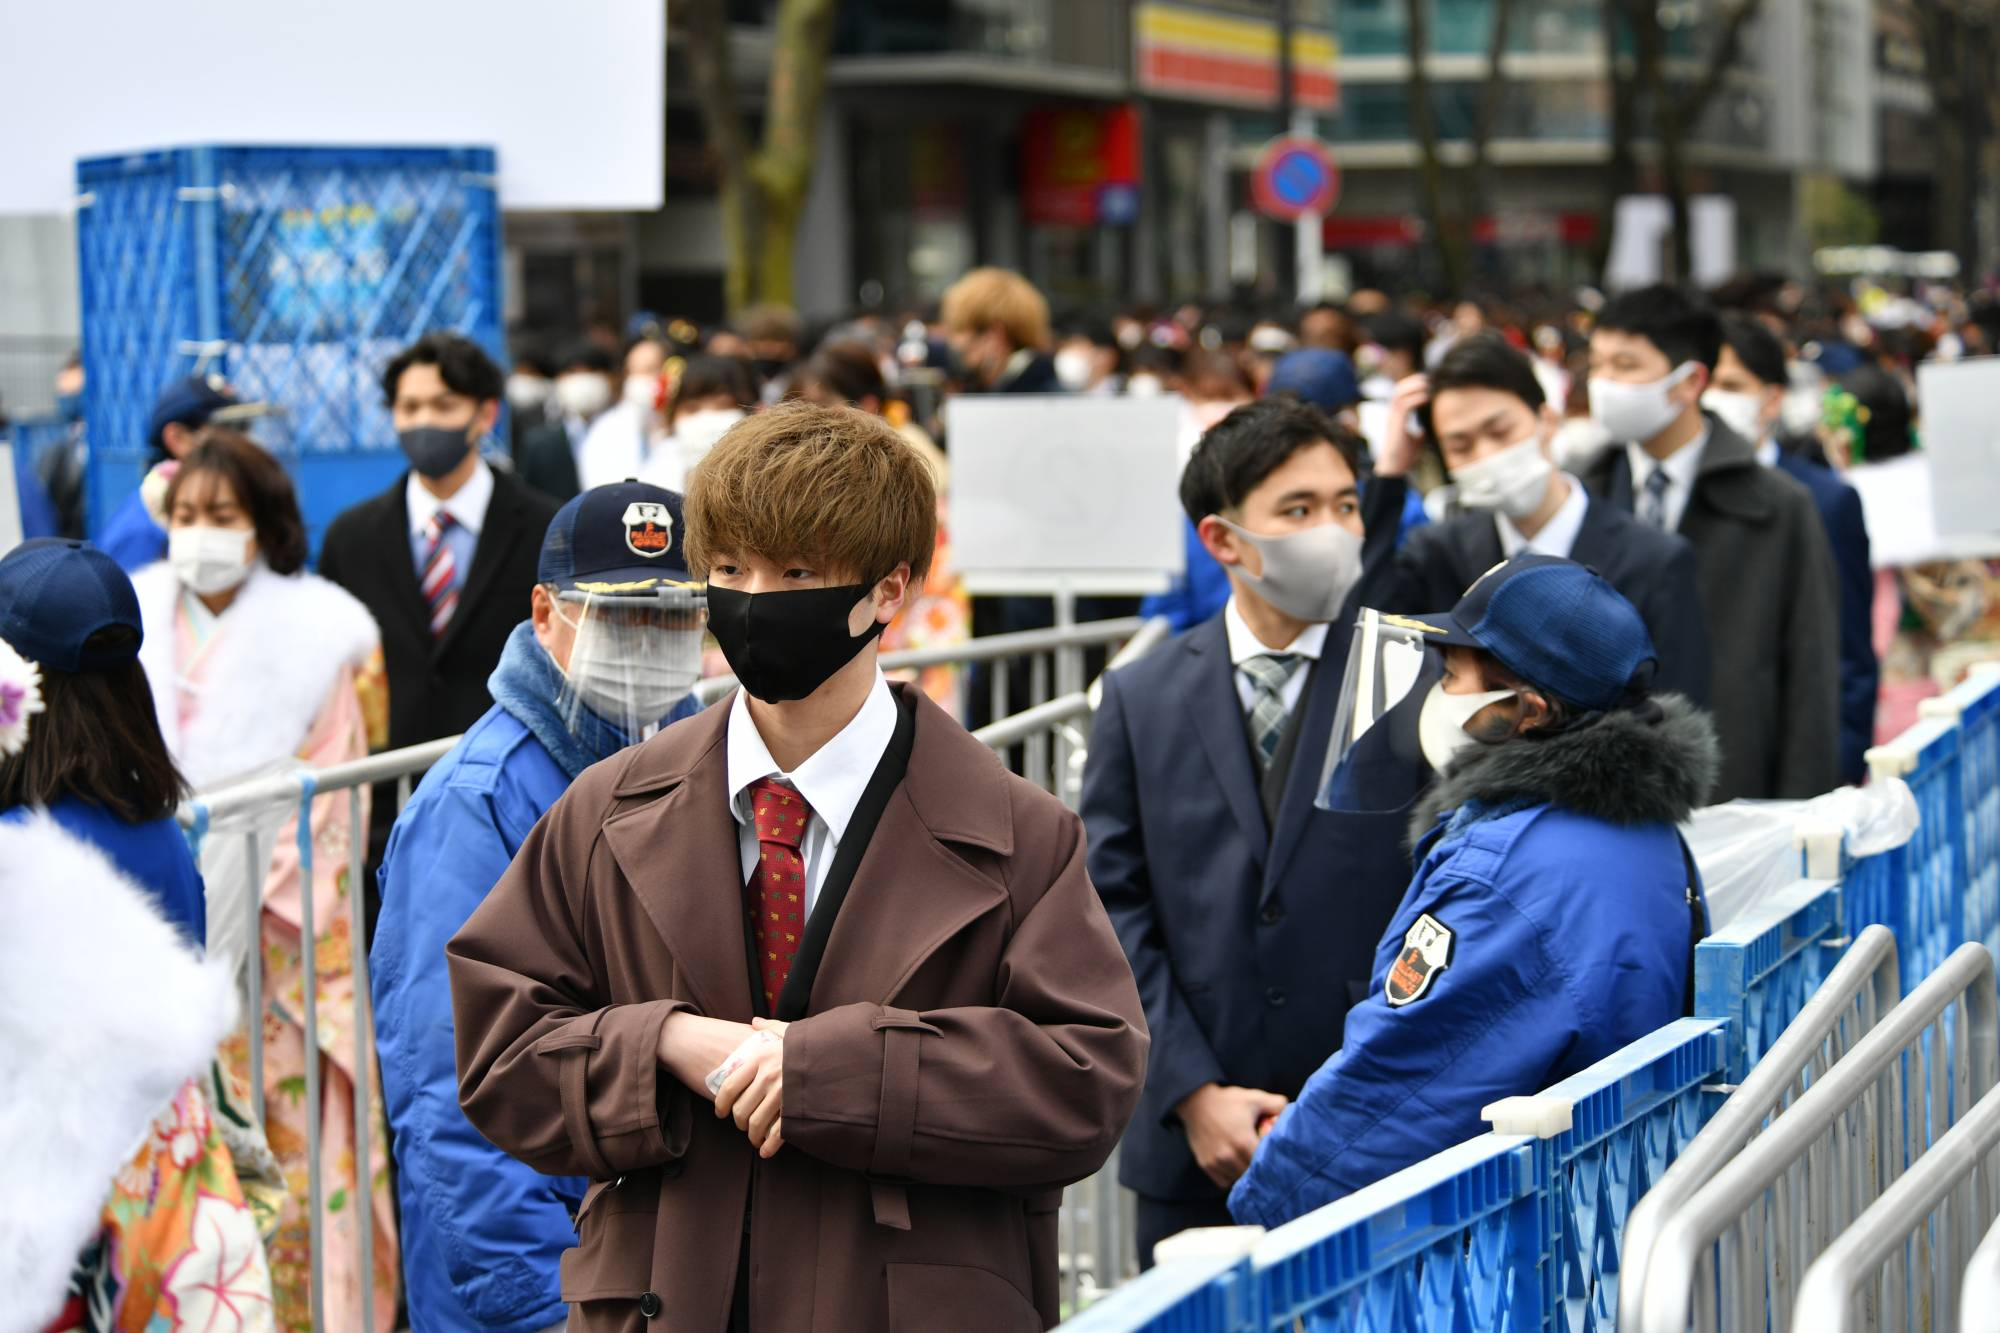 Attendees line up for a coming-of-age ceremony in Yokohama while maintaining distance according to recommendations. | RYUSEI TAKAHASHI